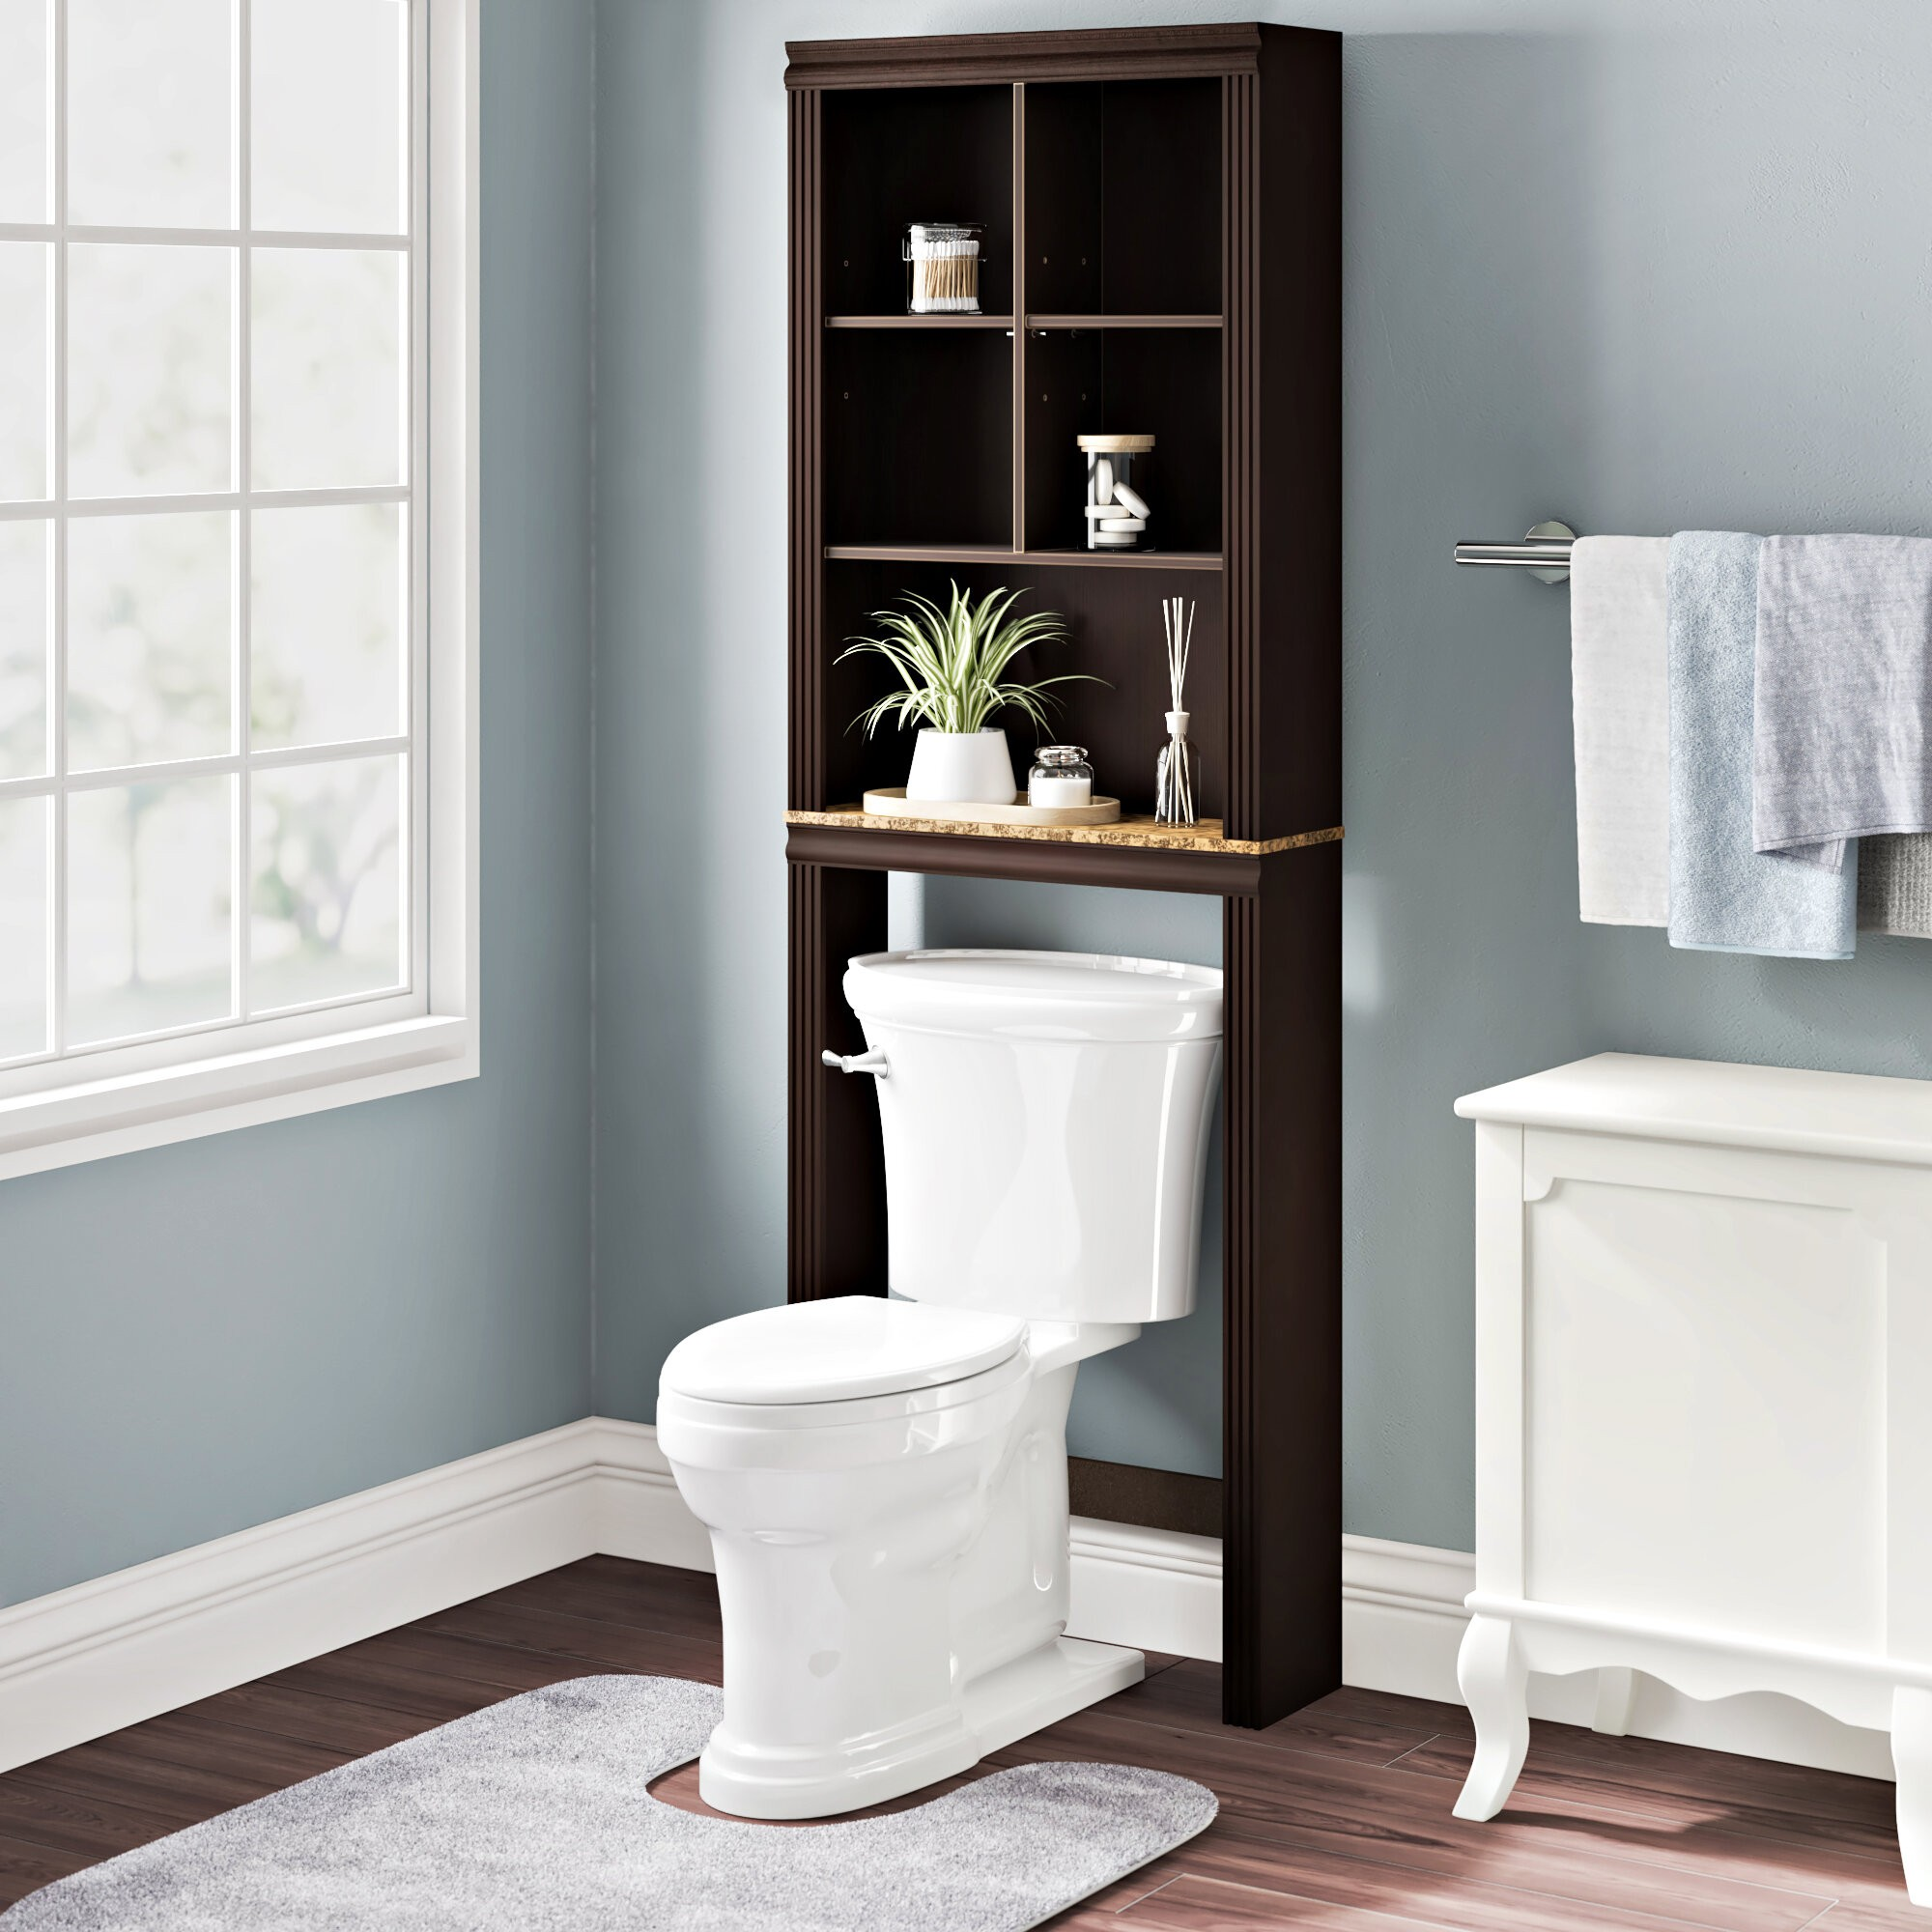 "Milledgeville 23.307"" W x 68.583"" H x 7.402"" D Over-The-Toilet Storage"